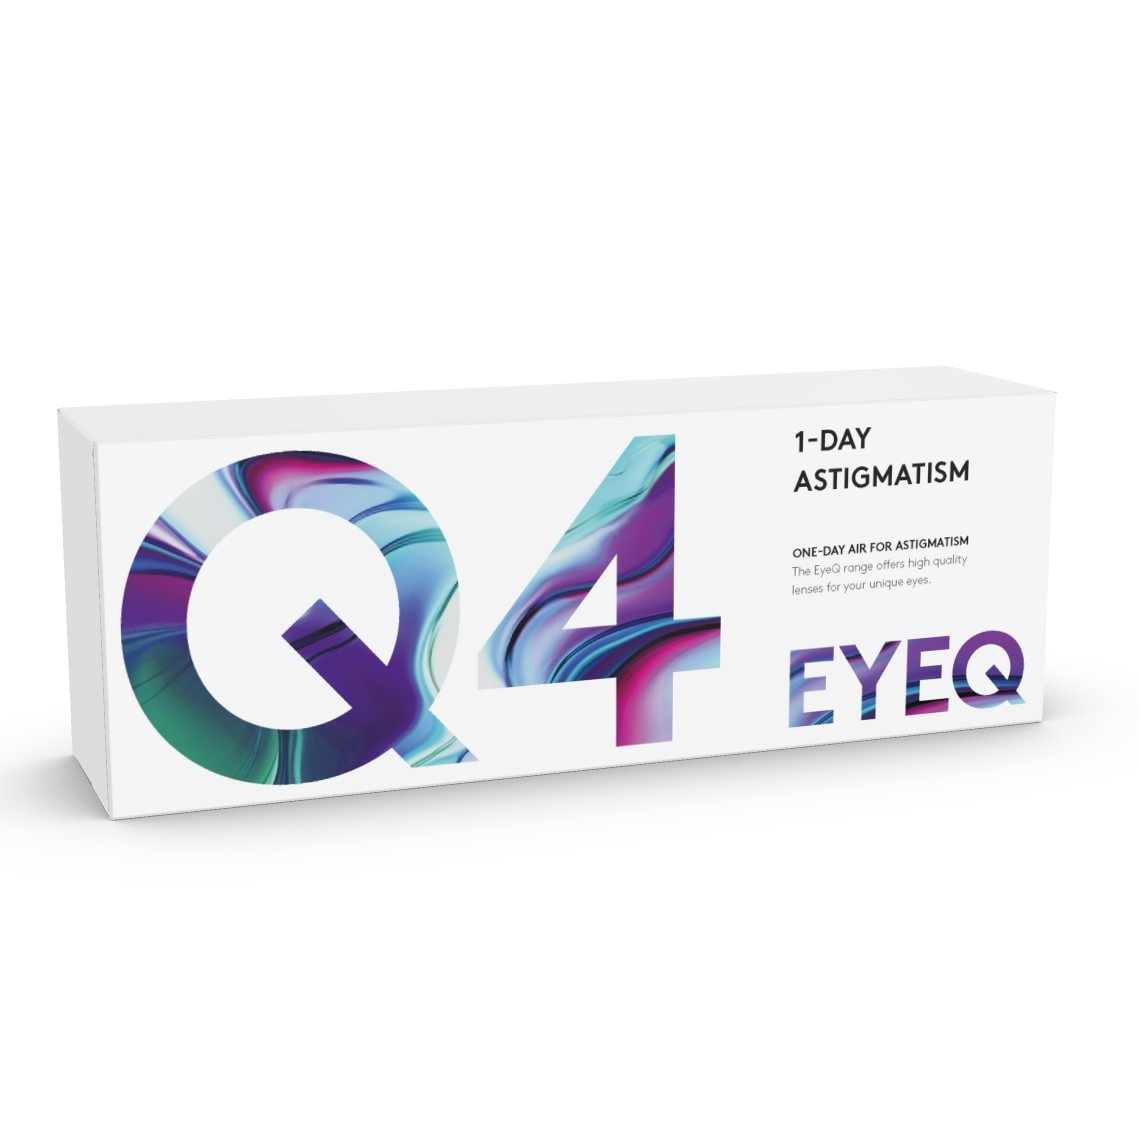 EyeQ One-Day Air For Astigmatism Q4 30 stk/pakke